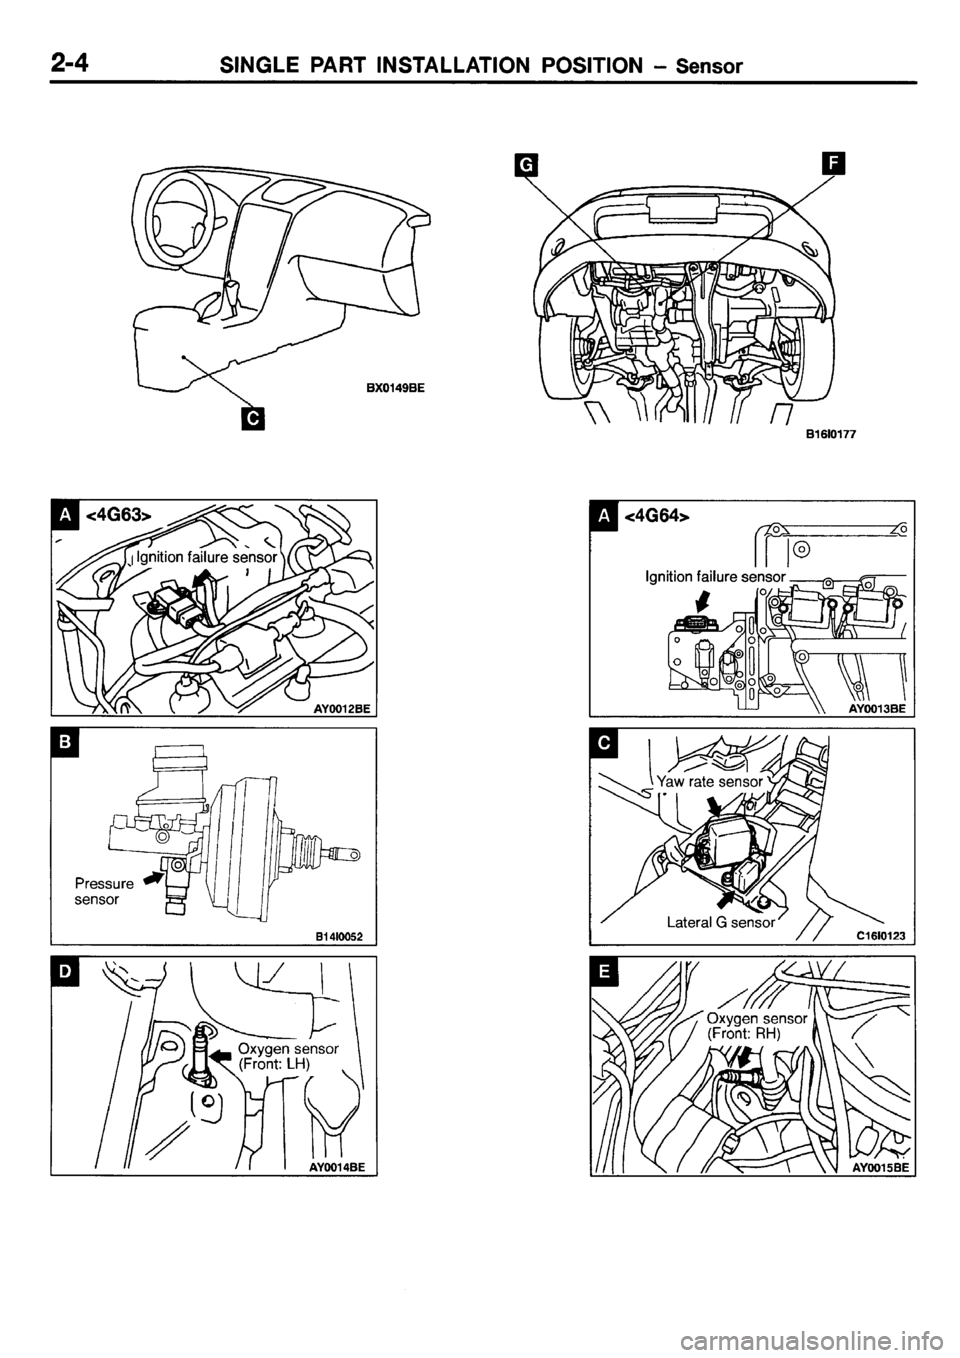 MITSUBISHI GALANT 2001 8.G Electrical Wiring Diagram